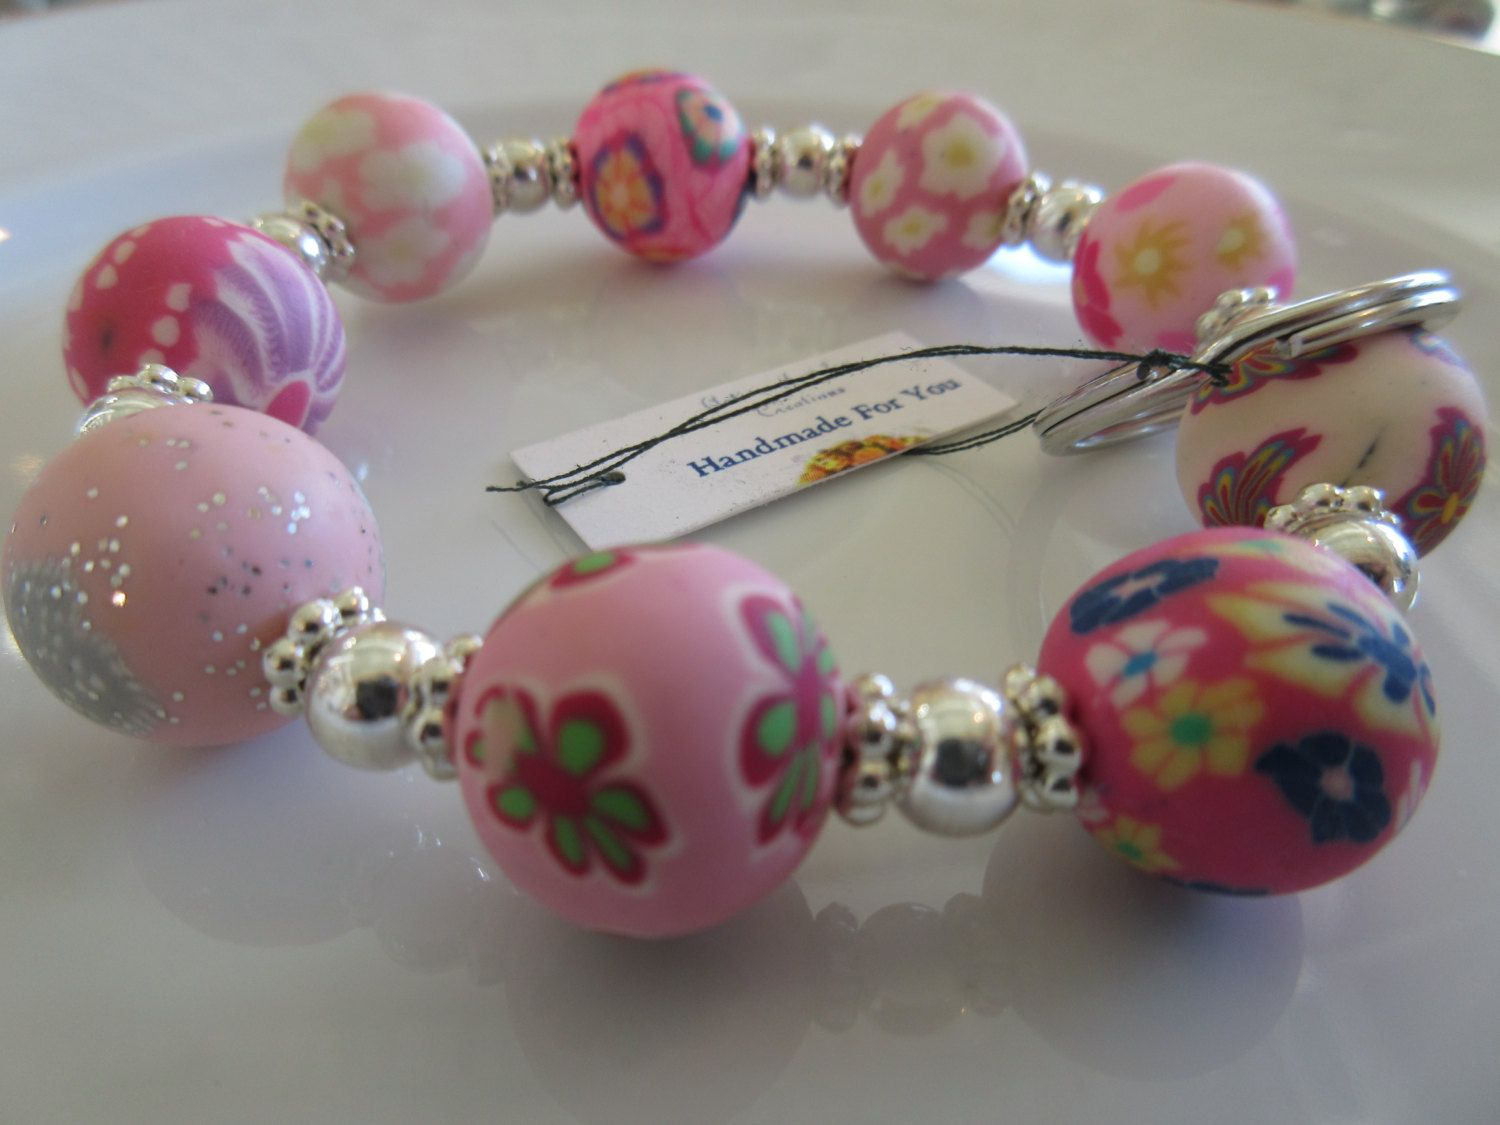 Handmade For You Hands-Free Beaded Bracelet KeyChain Keyring Floral Polymer Clay Beads in Pinks and Silver Stretch Cord Fits Many Sizes K249 by JewelsHandmadeForYou on Etsy